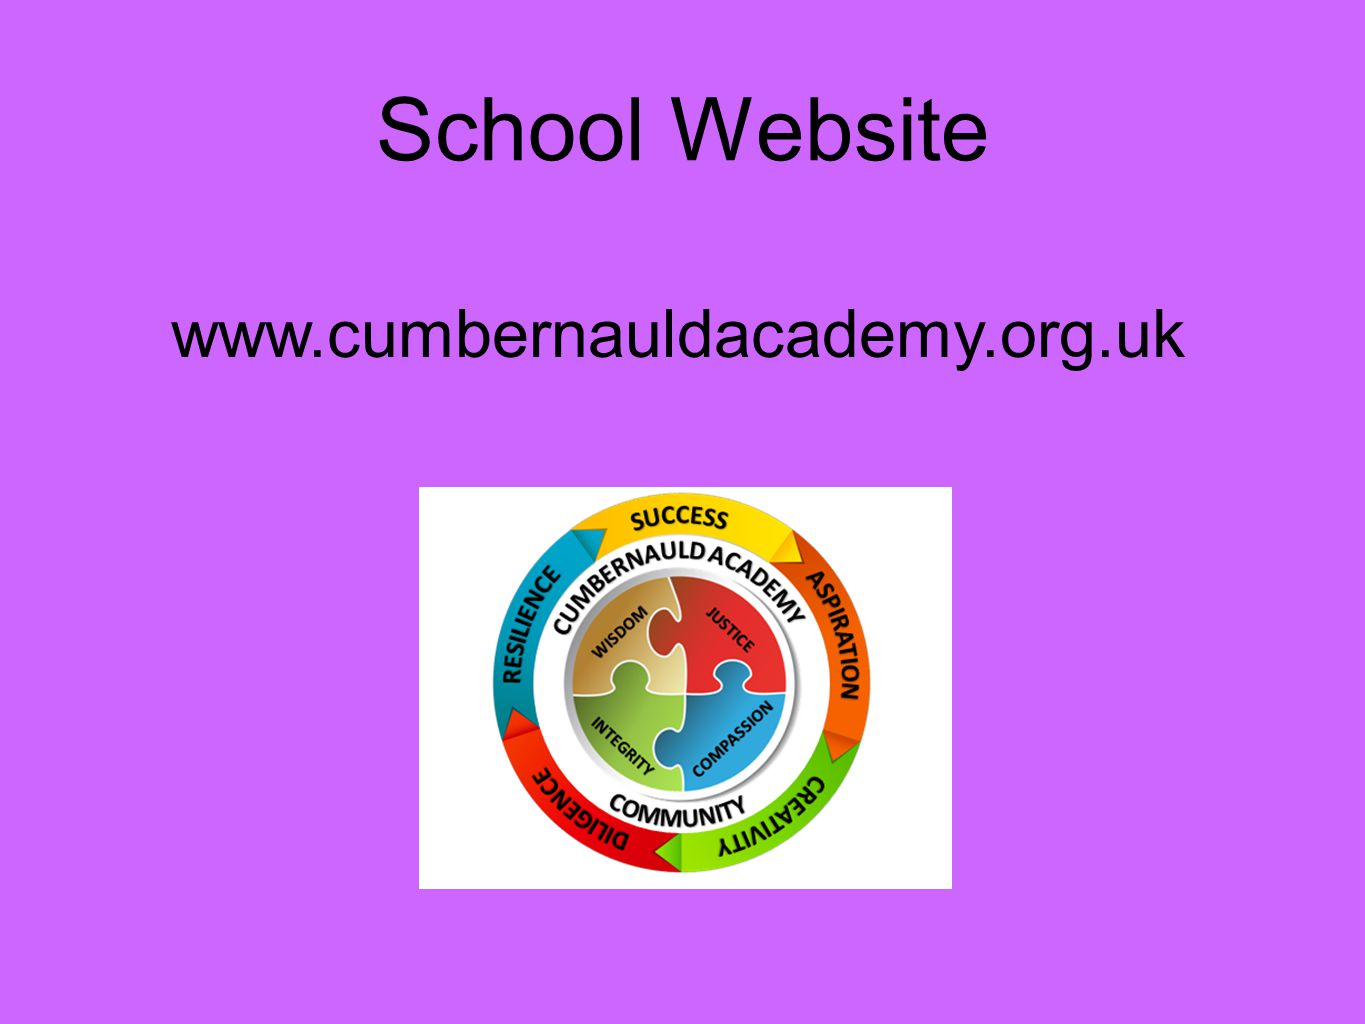 School Website www.cumbernauldacademy.org.uk